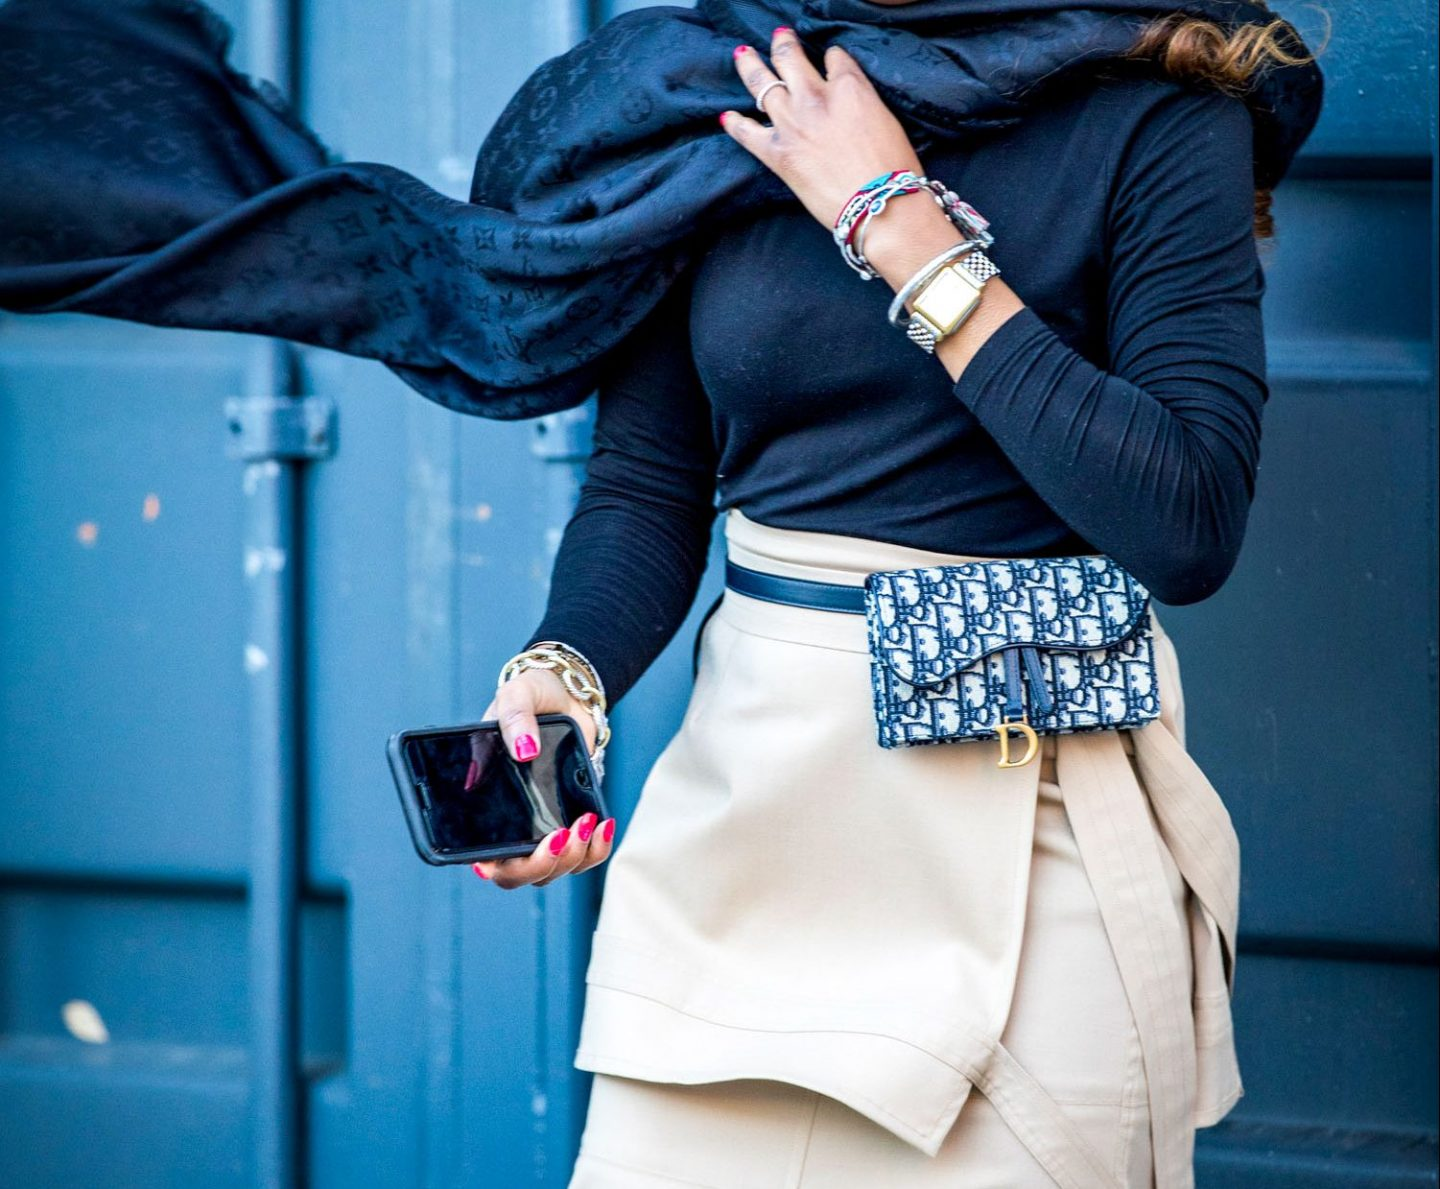 Atlanta lifestyle blogger Monica Awe-Etuk wearing the dior belt bag, philip lim midi skirt, gucci sunglasses and louis Vuitton scarf. How to wear the belt bags trend